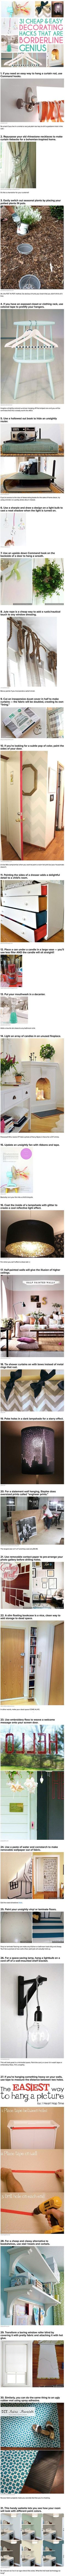 31 Cheap & Easy Decorating Hacks That Are Borderline Genius Pictures, Photos, and Images for Facebook, Tumblr, Pinterest, and Twitter